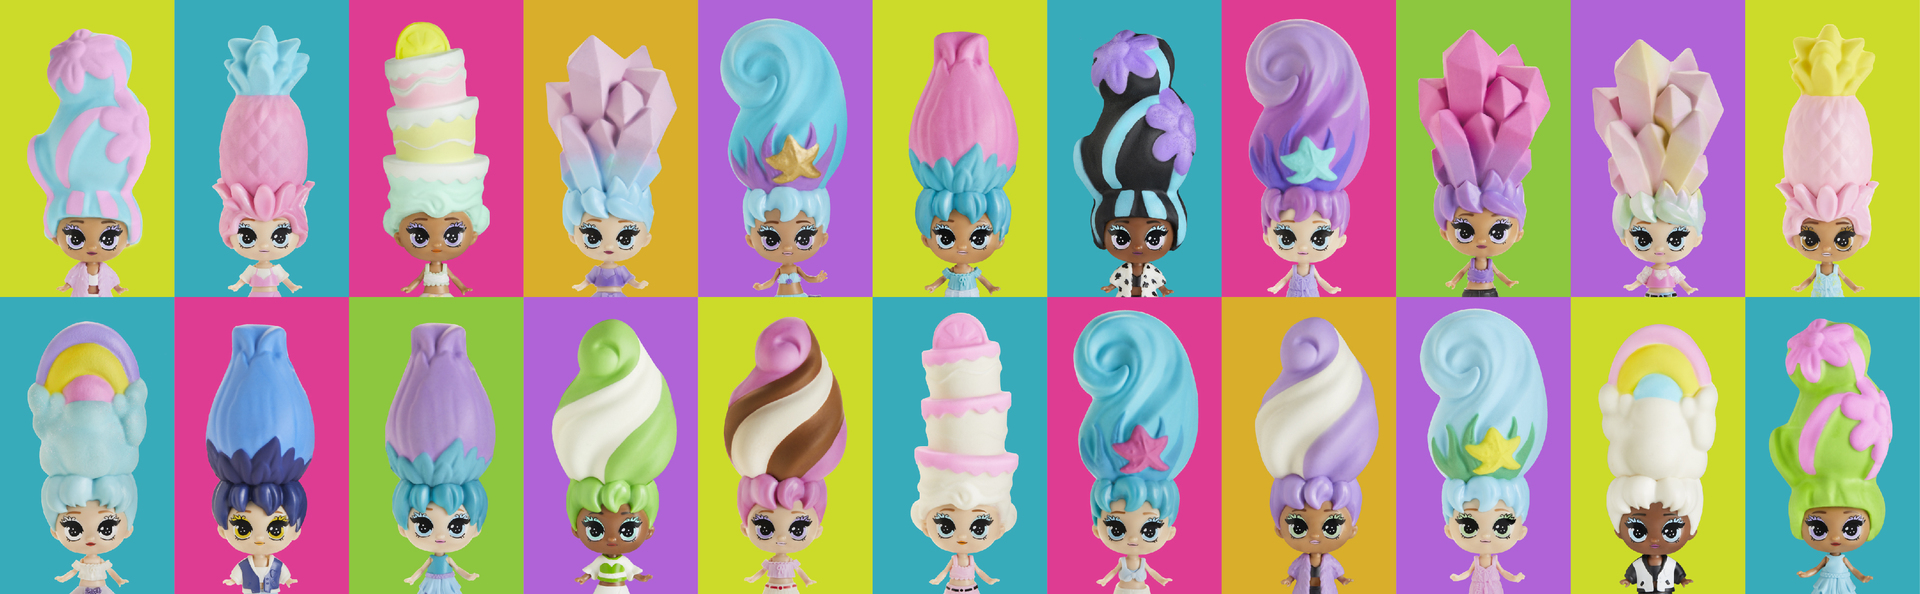 COLLECT ALL 22 Blume doll